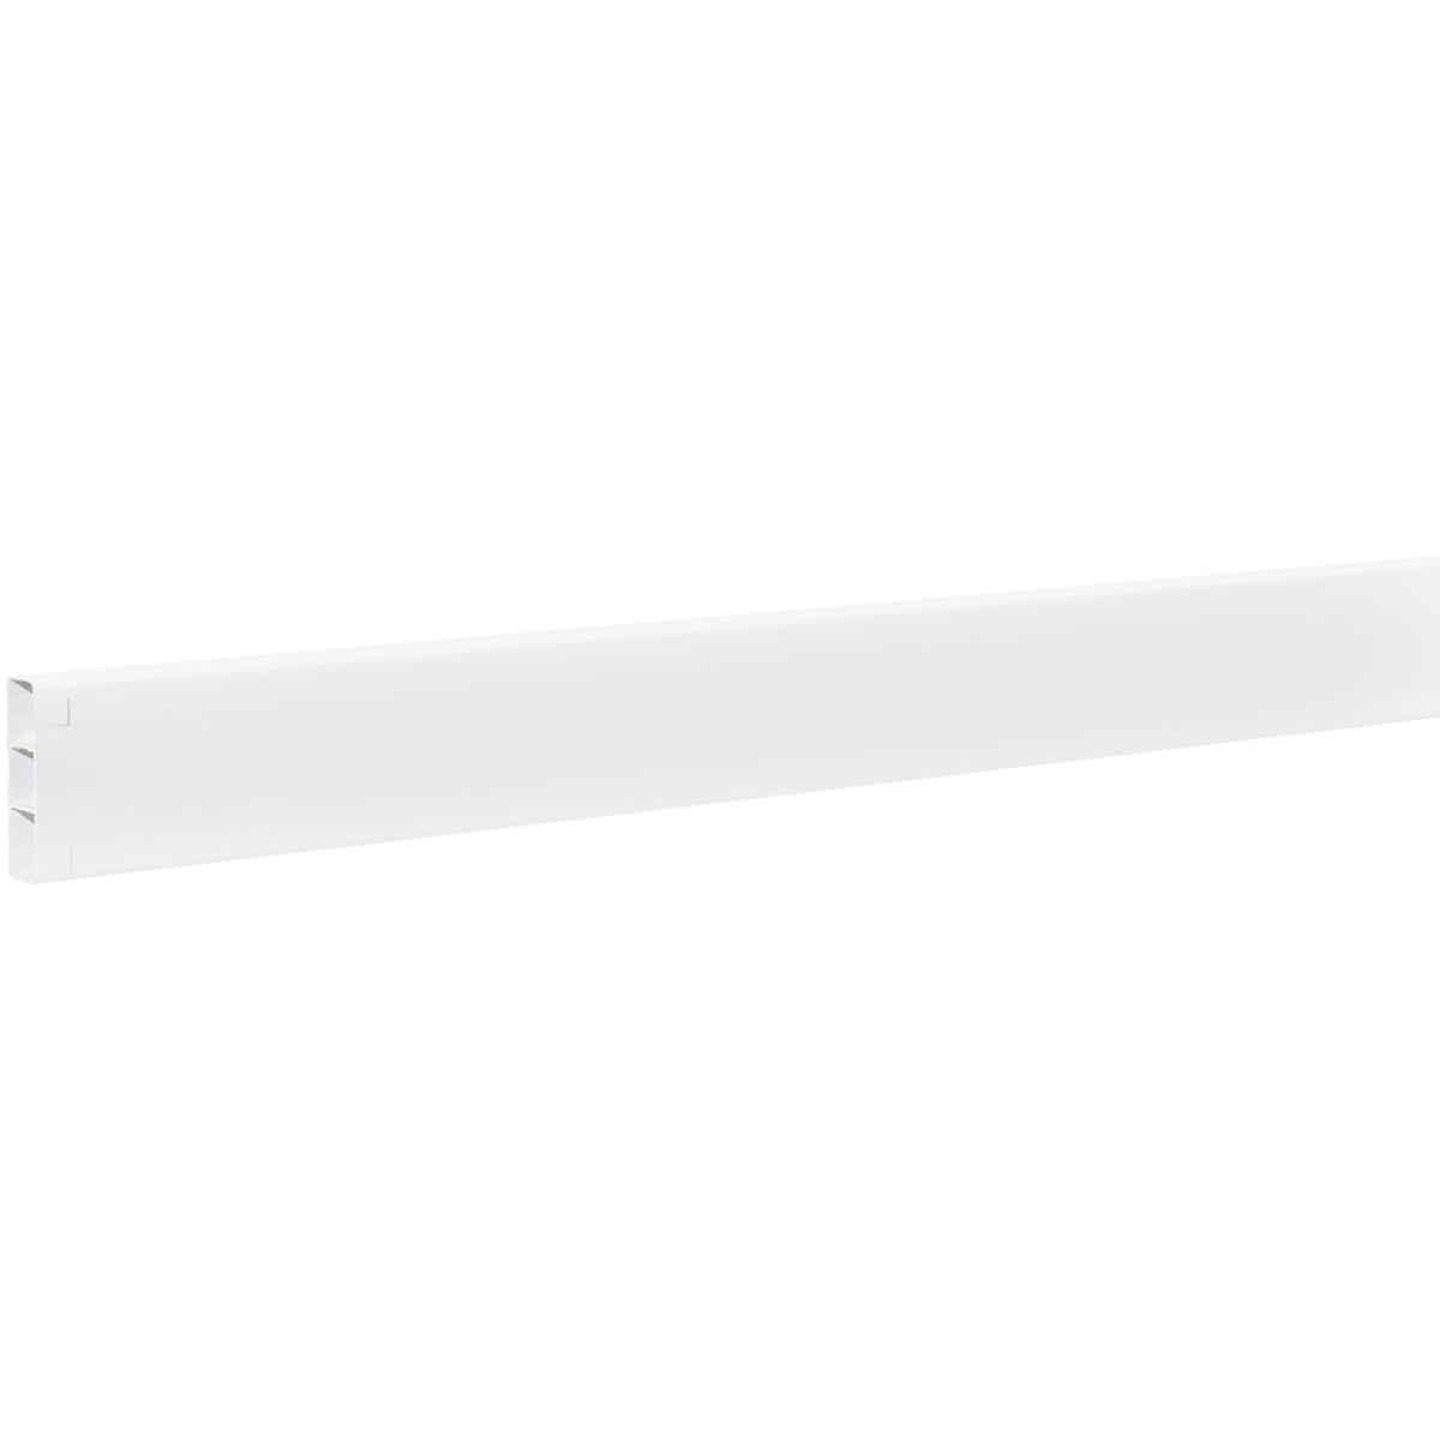 Outdoor Essentials 2 In. x 6 In. x 96 In. White Vinyl Fence Rail Image 2